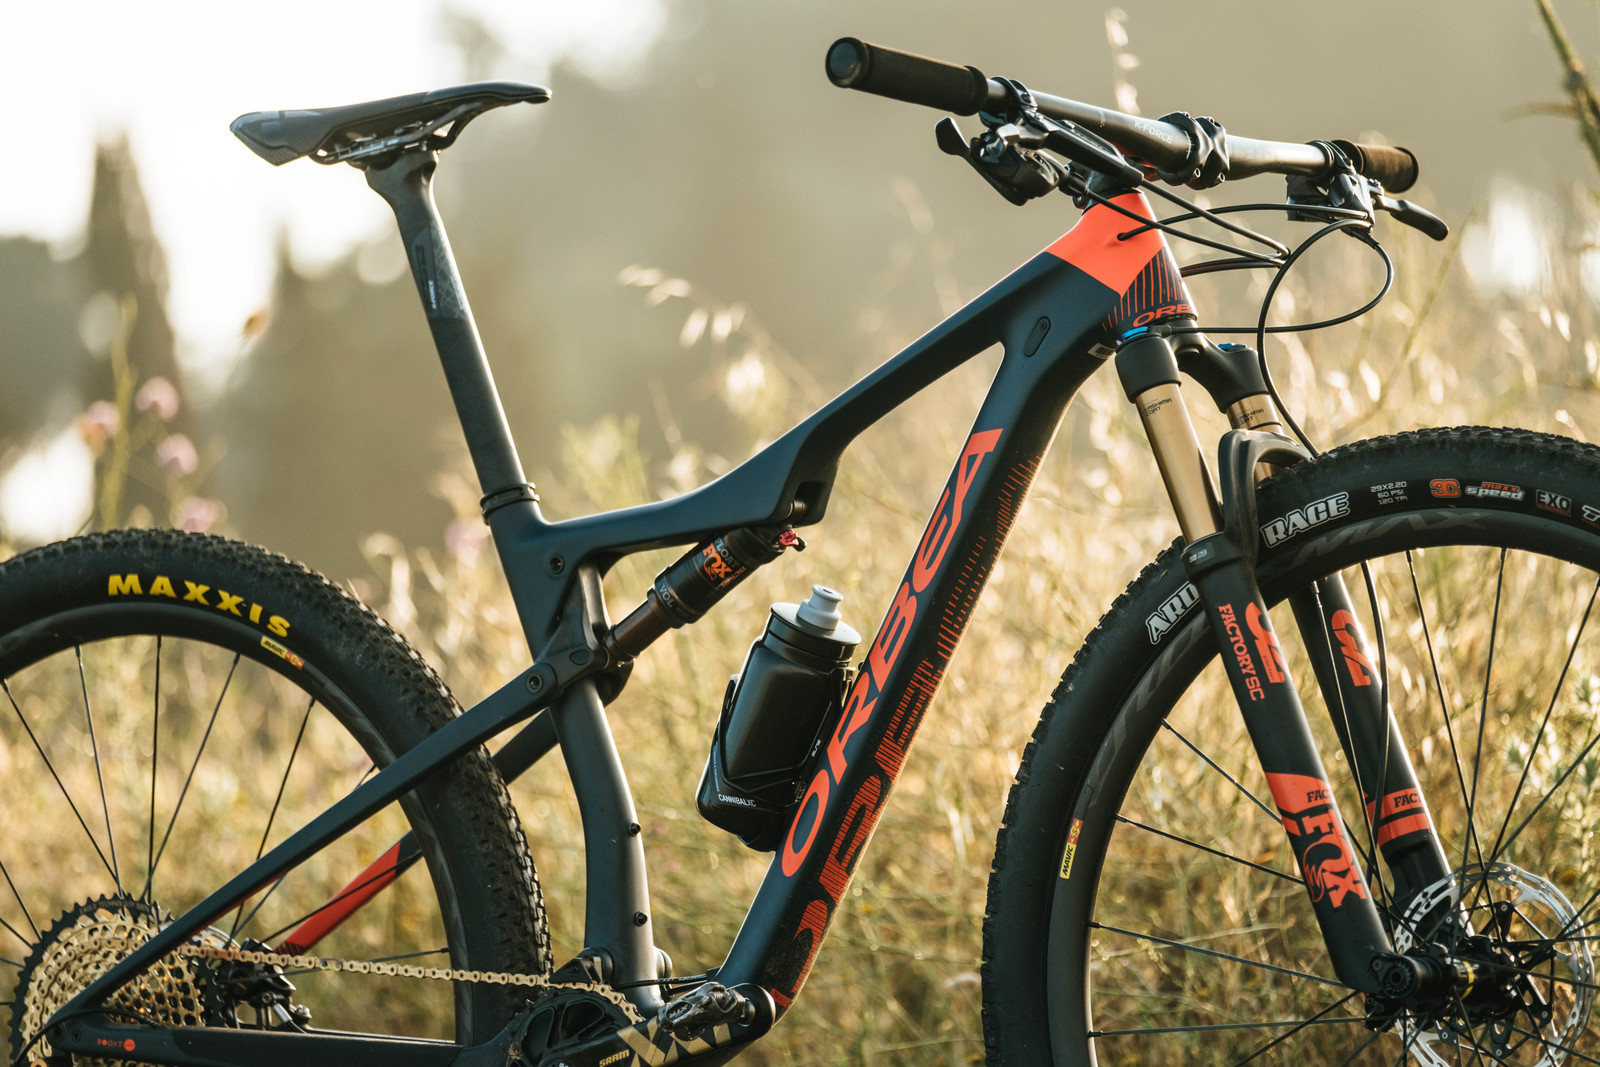 Introducing the 2019 Orbea Oiz - A Revamped XC Bike Aiming for the Top